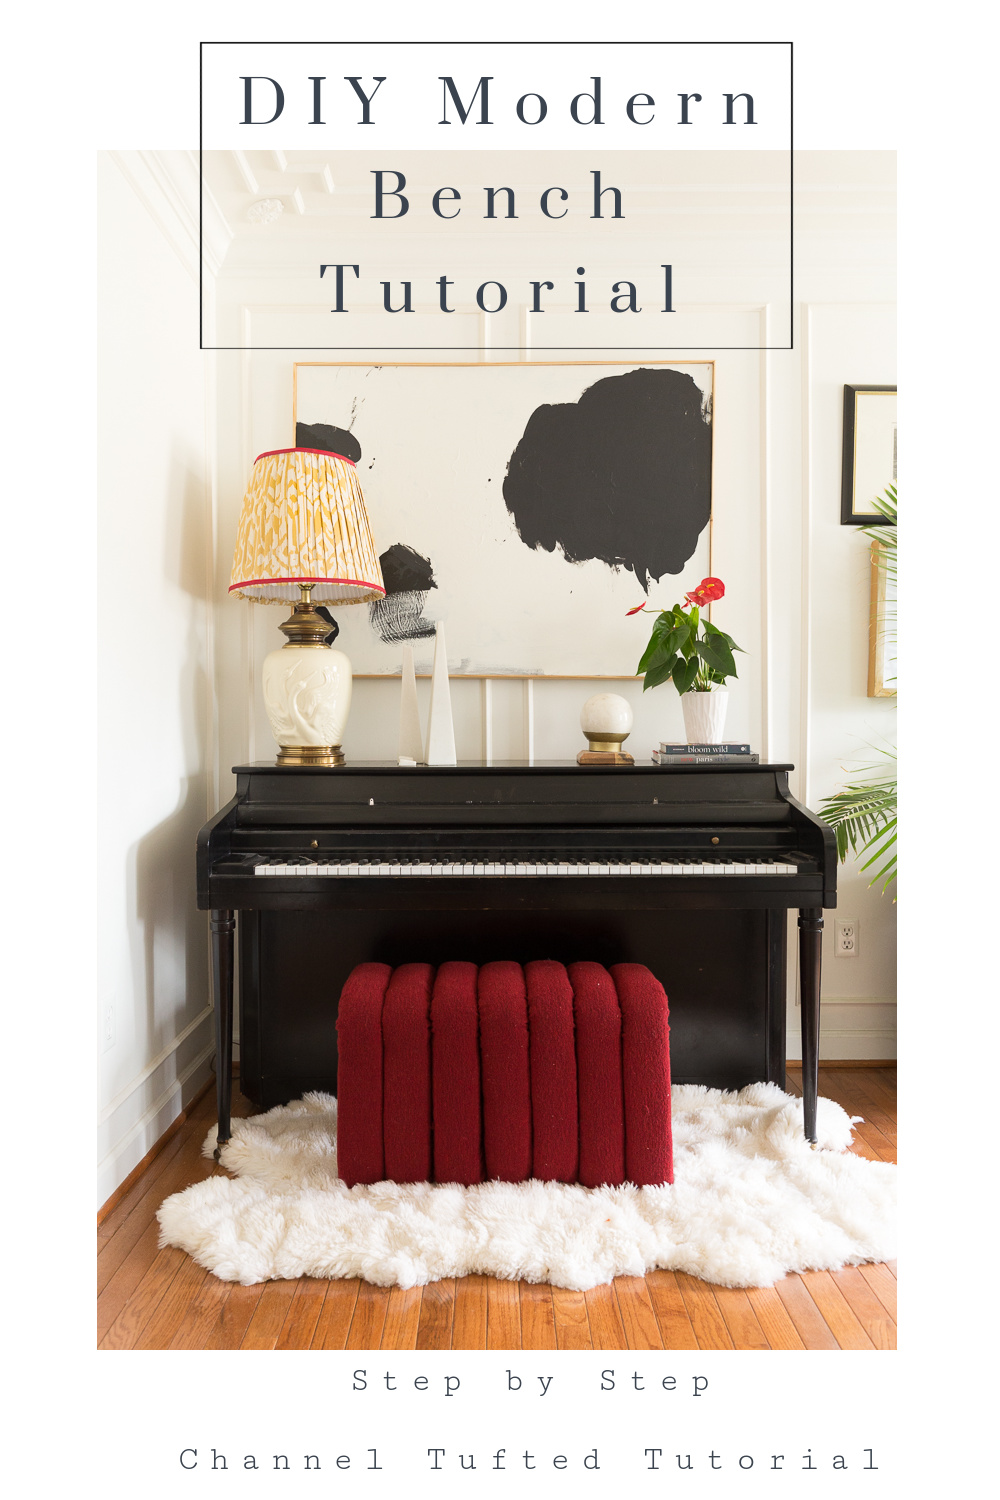 . New Year New Room Challenge,DIY Modern bench tutorial, velvet channel tuft, boucle, red bench, how to upholster, step by step, build a bench, piano bench